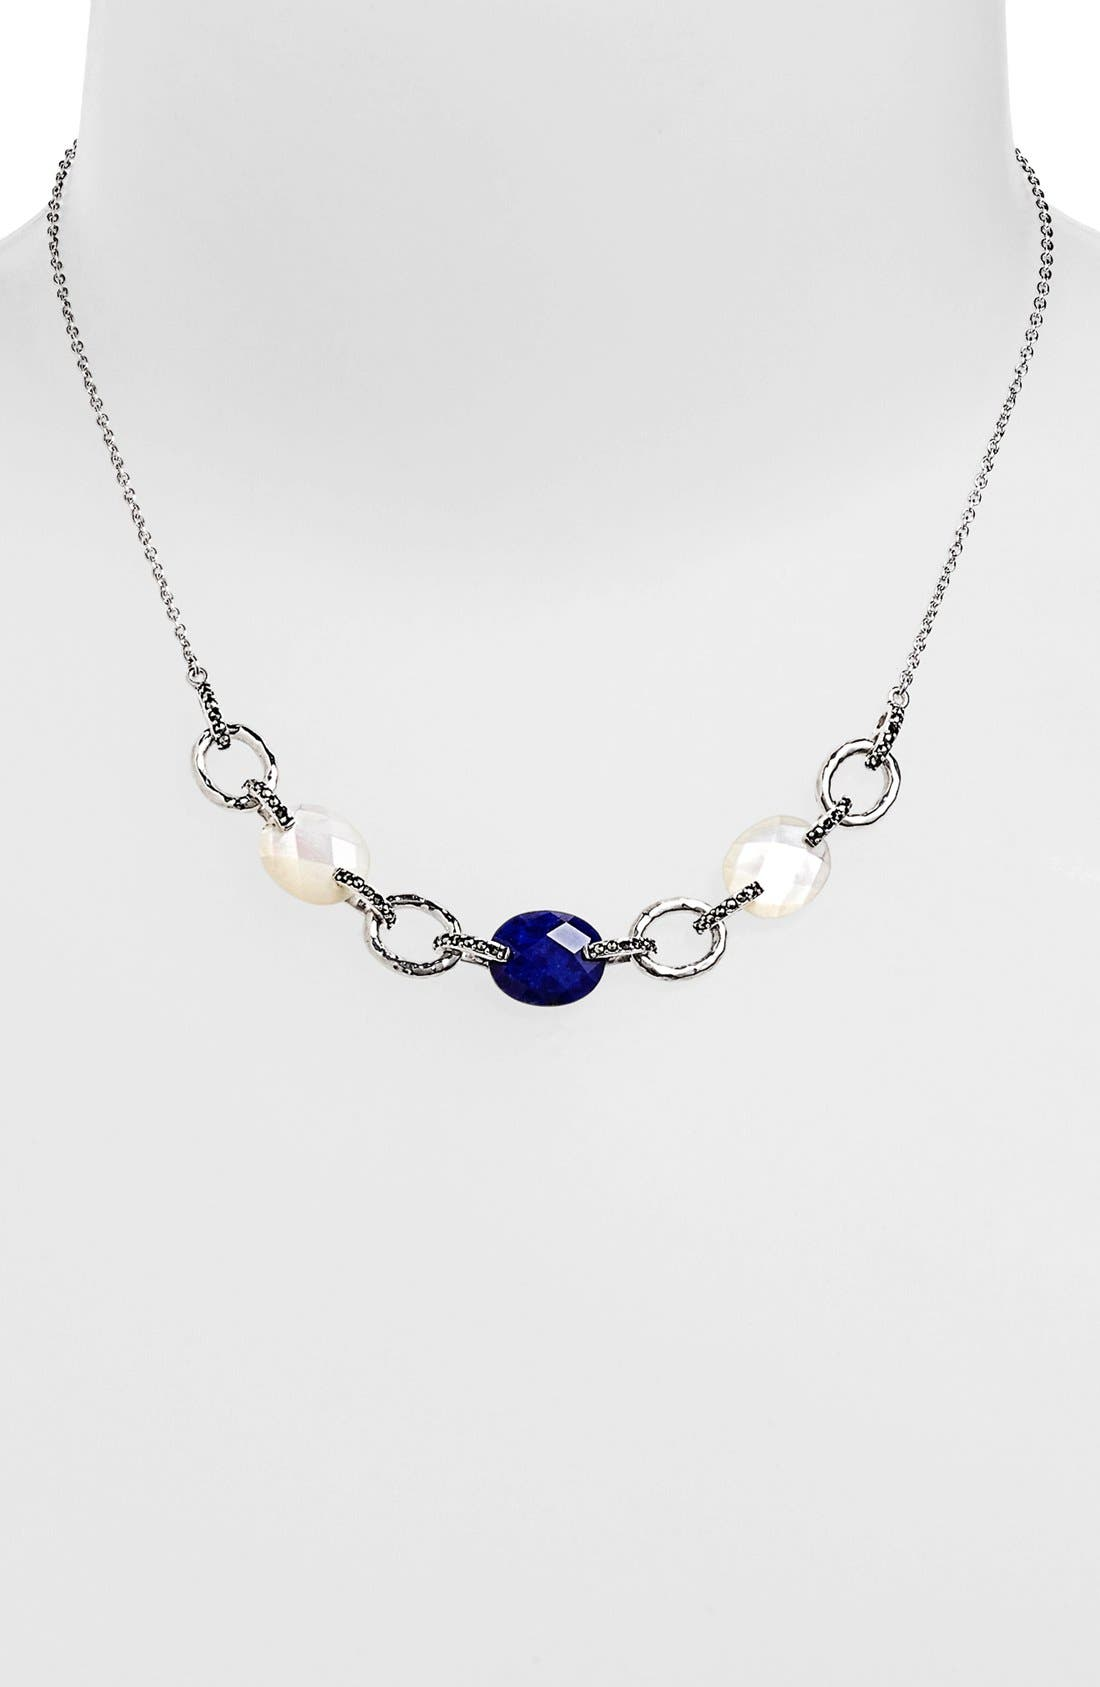 Main Image - Judith Jack 'Blue Sky' Multi Stone Frontal Necklace